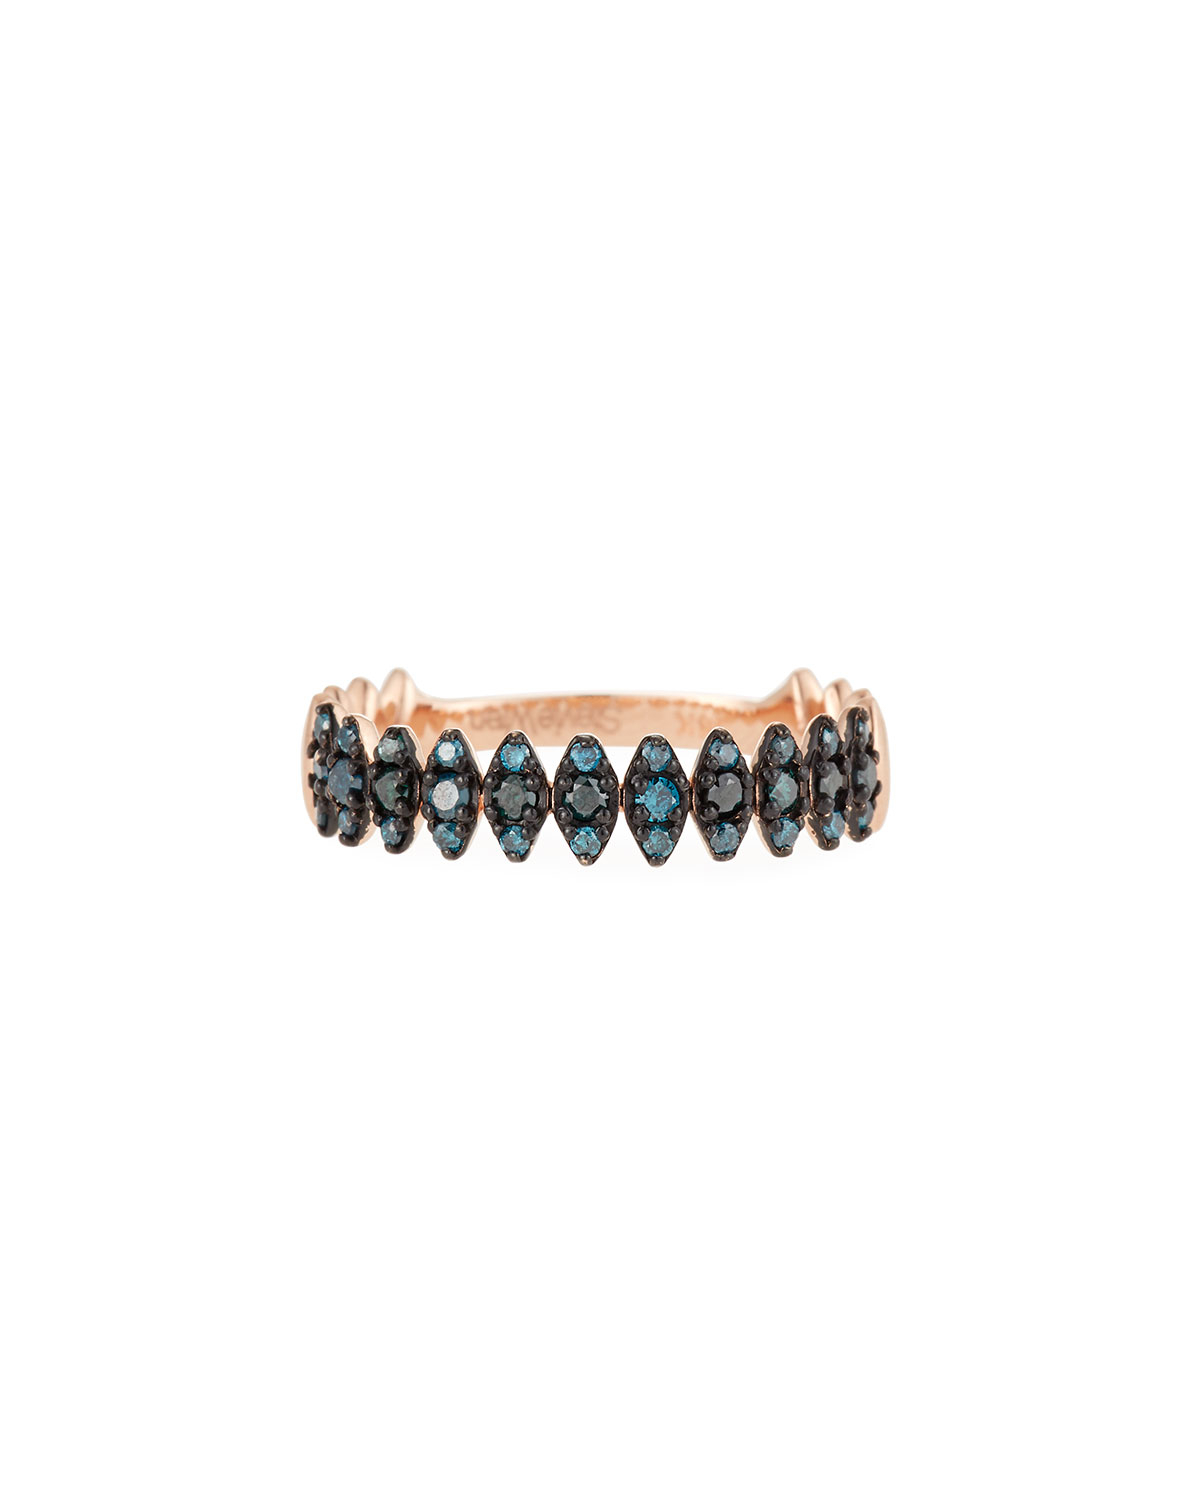 14K Rose Gold Zigzag Blue Diamond Ring, Size 7 Intended For Best And Newest Polished Zigzag Rings (View 1 of 25)